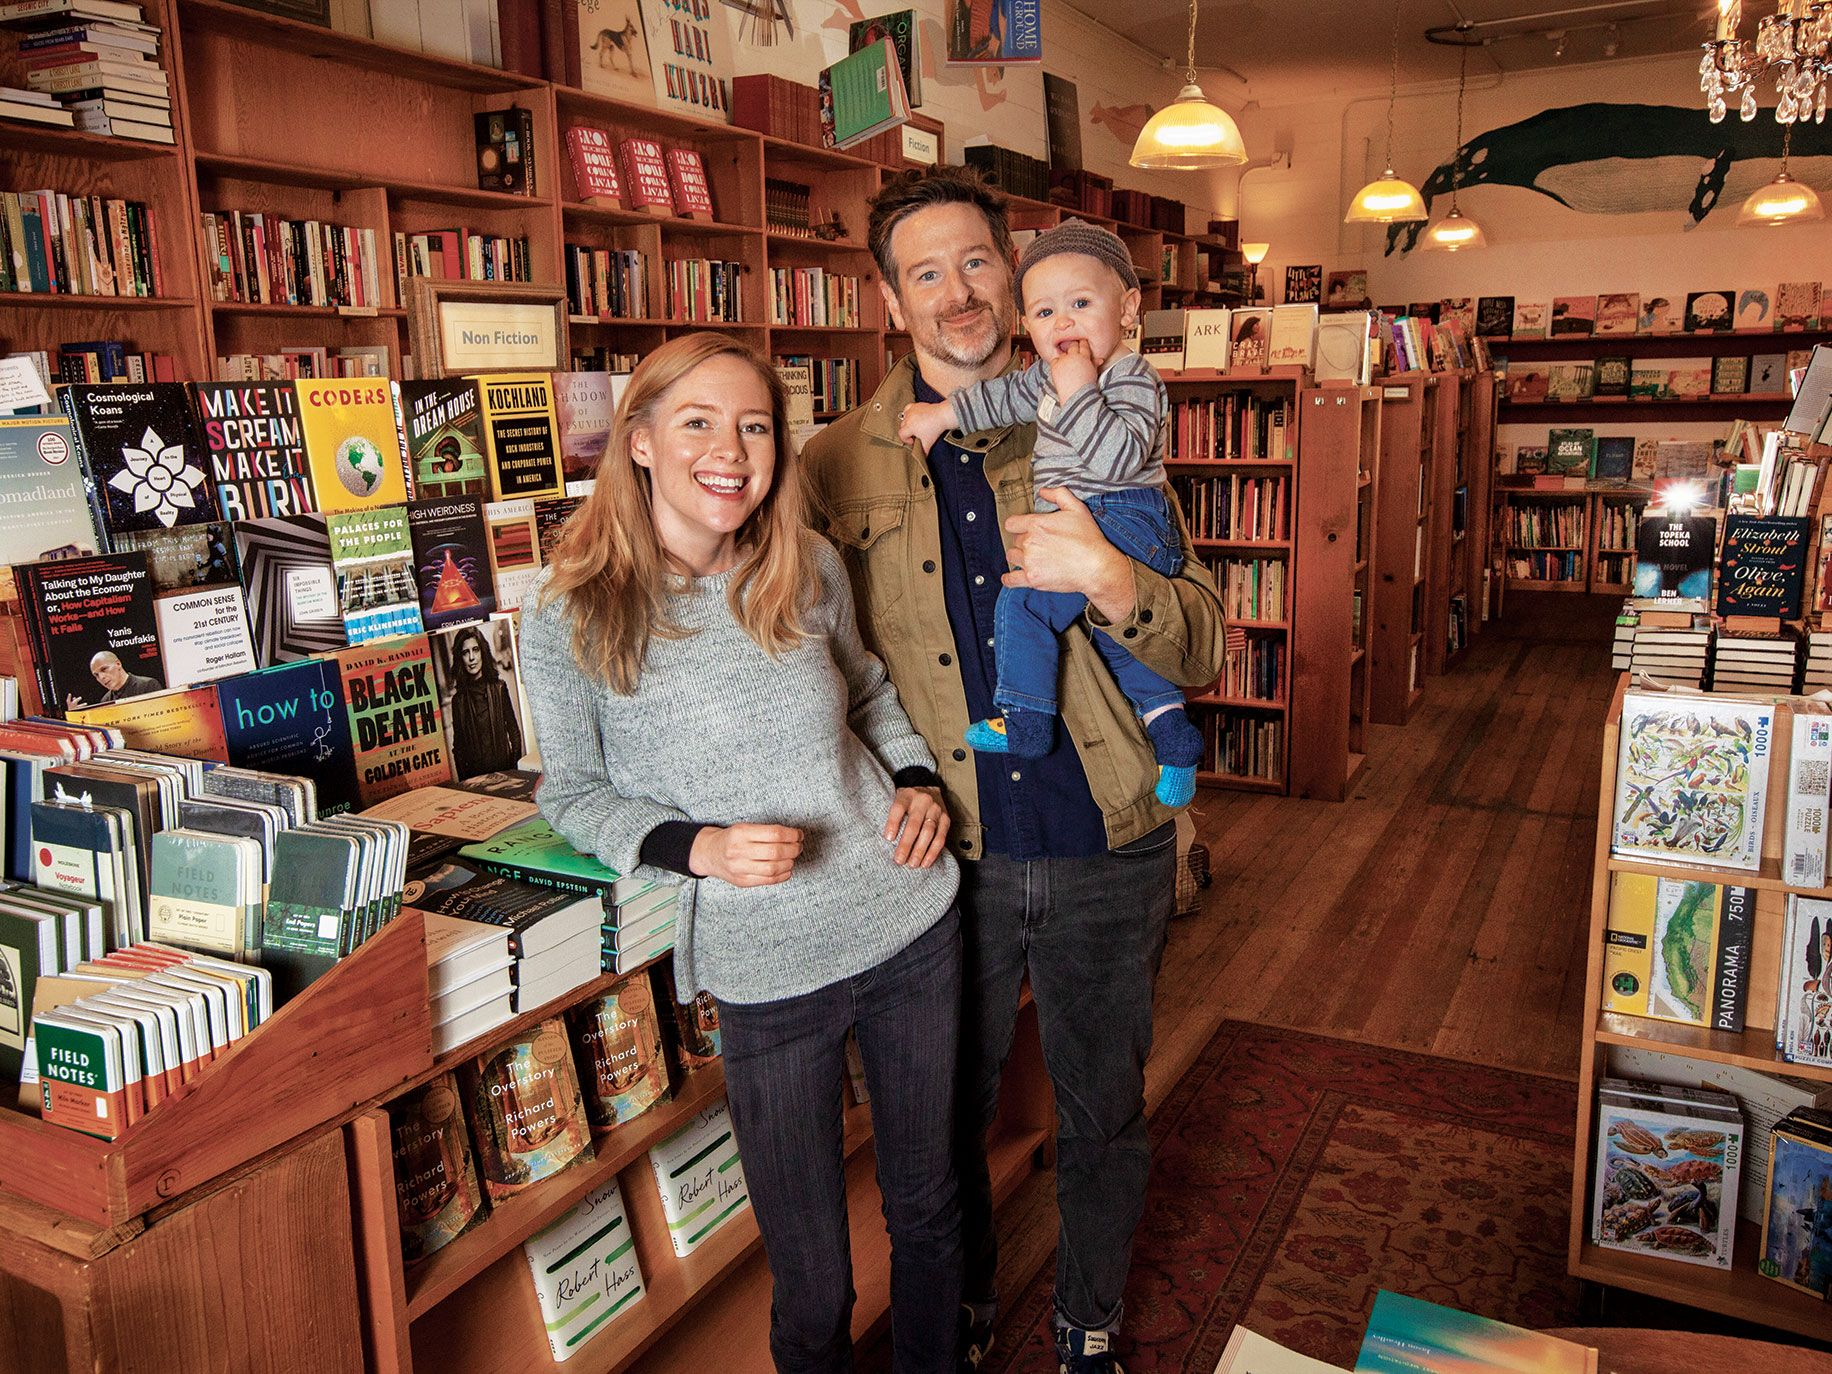 Stephen Sparks and Molly Parent, owners of Point Reyes Books, with their 14-month-old son, Liam. Their store exemplifies the resurgence of independent booksellers in the age of Amazon.